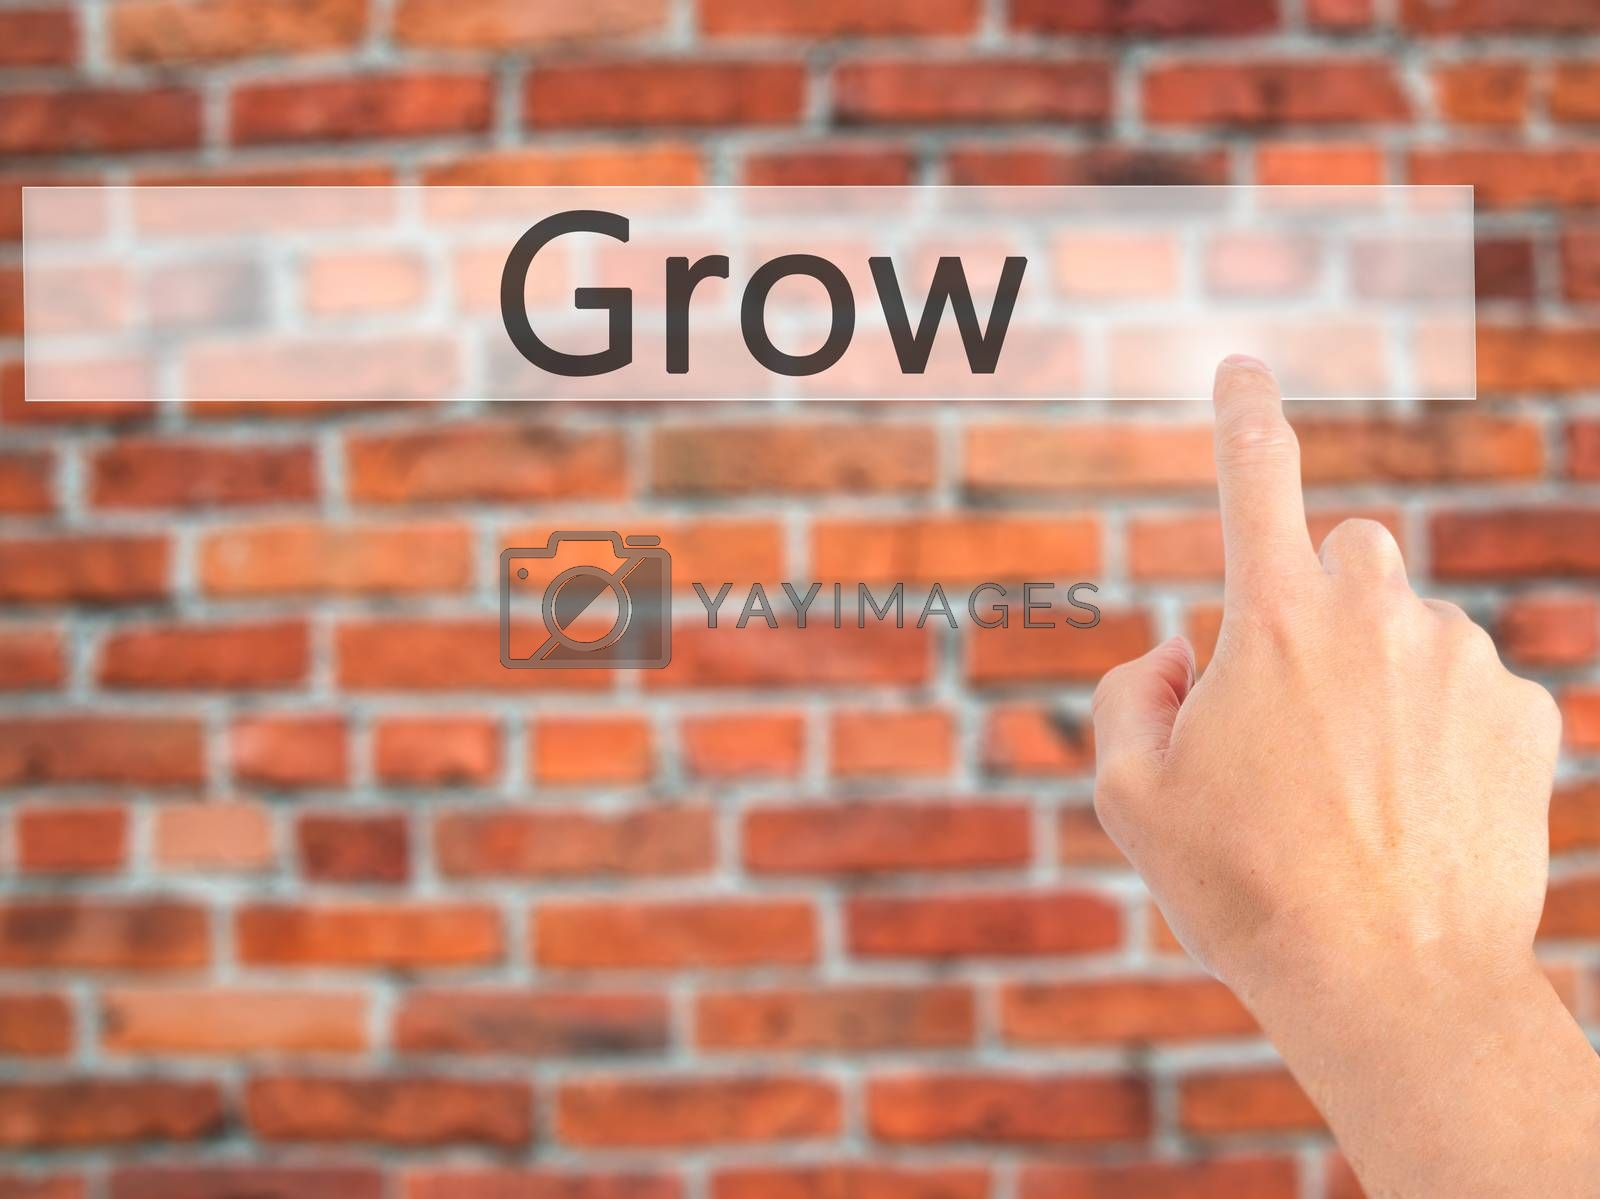 Grow - Hand pressing a button on blurred background concept on v by netsay.net